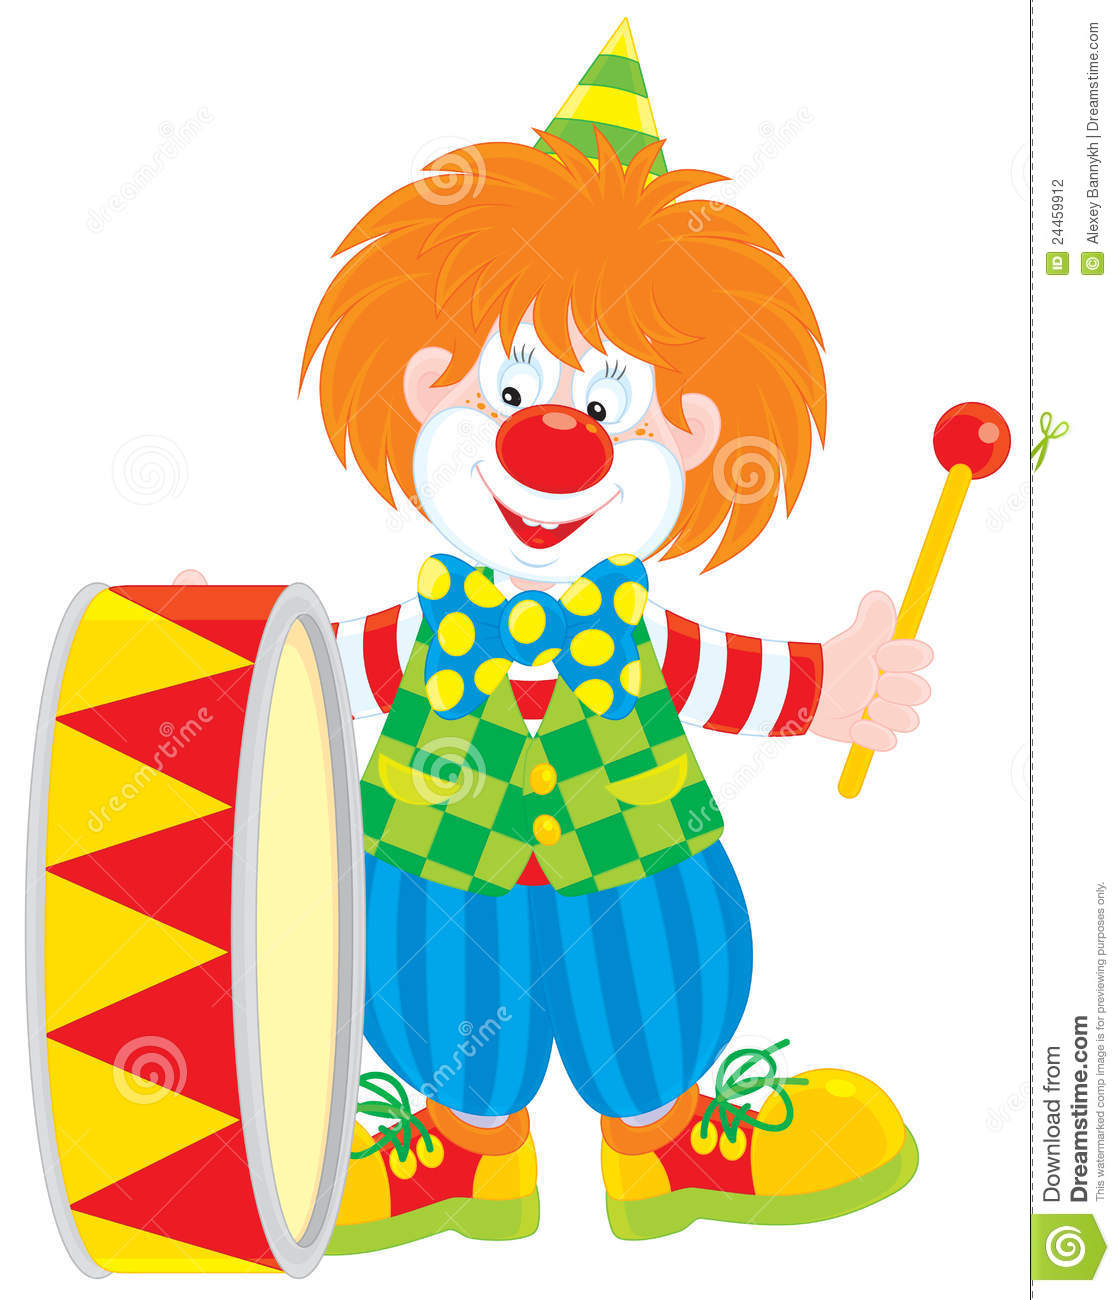 Vector clip-art of a funny red circus clown beating his colorful drum.